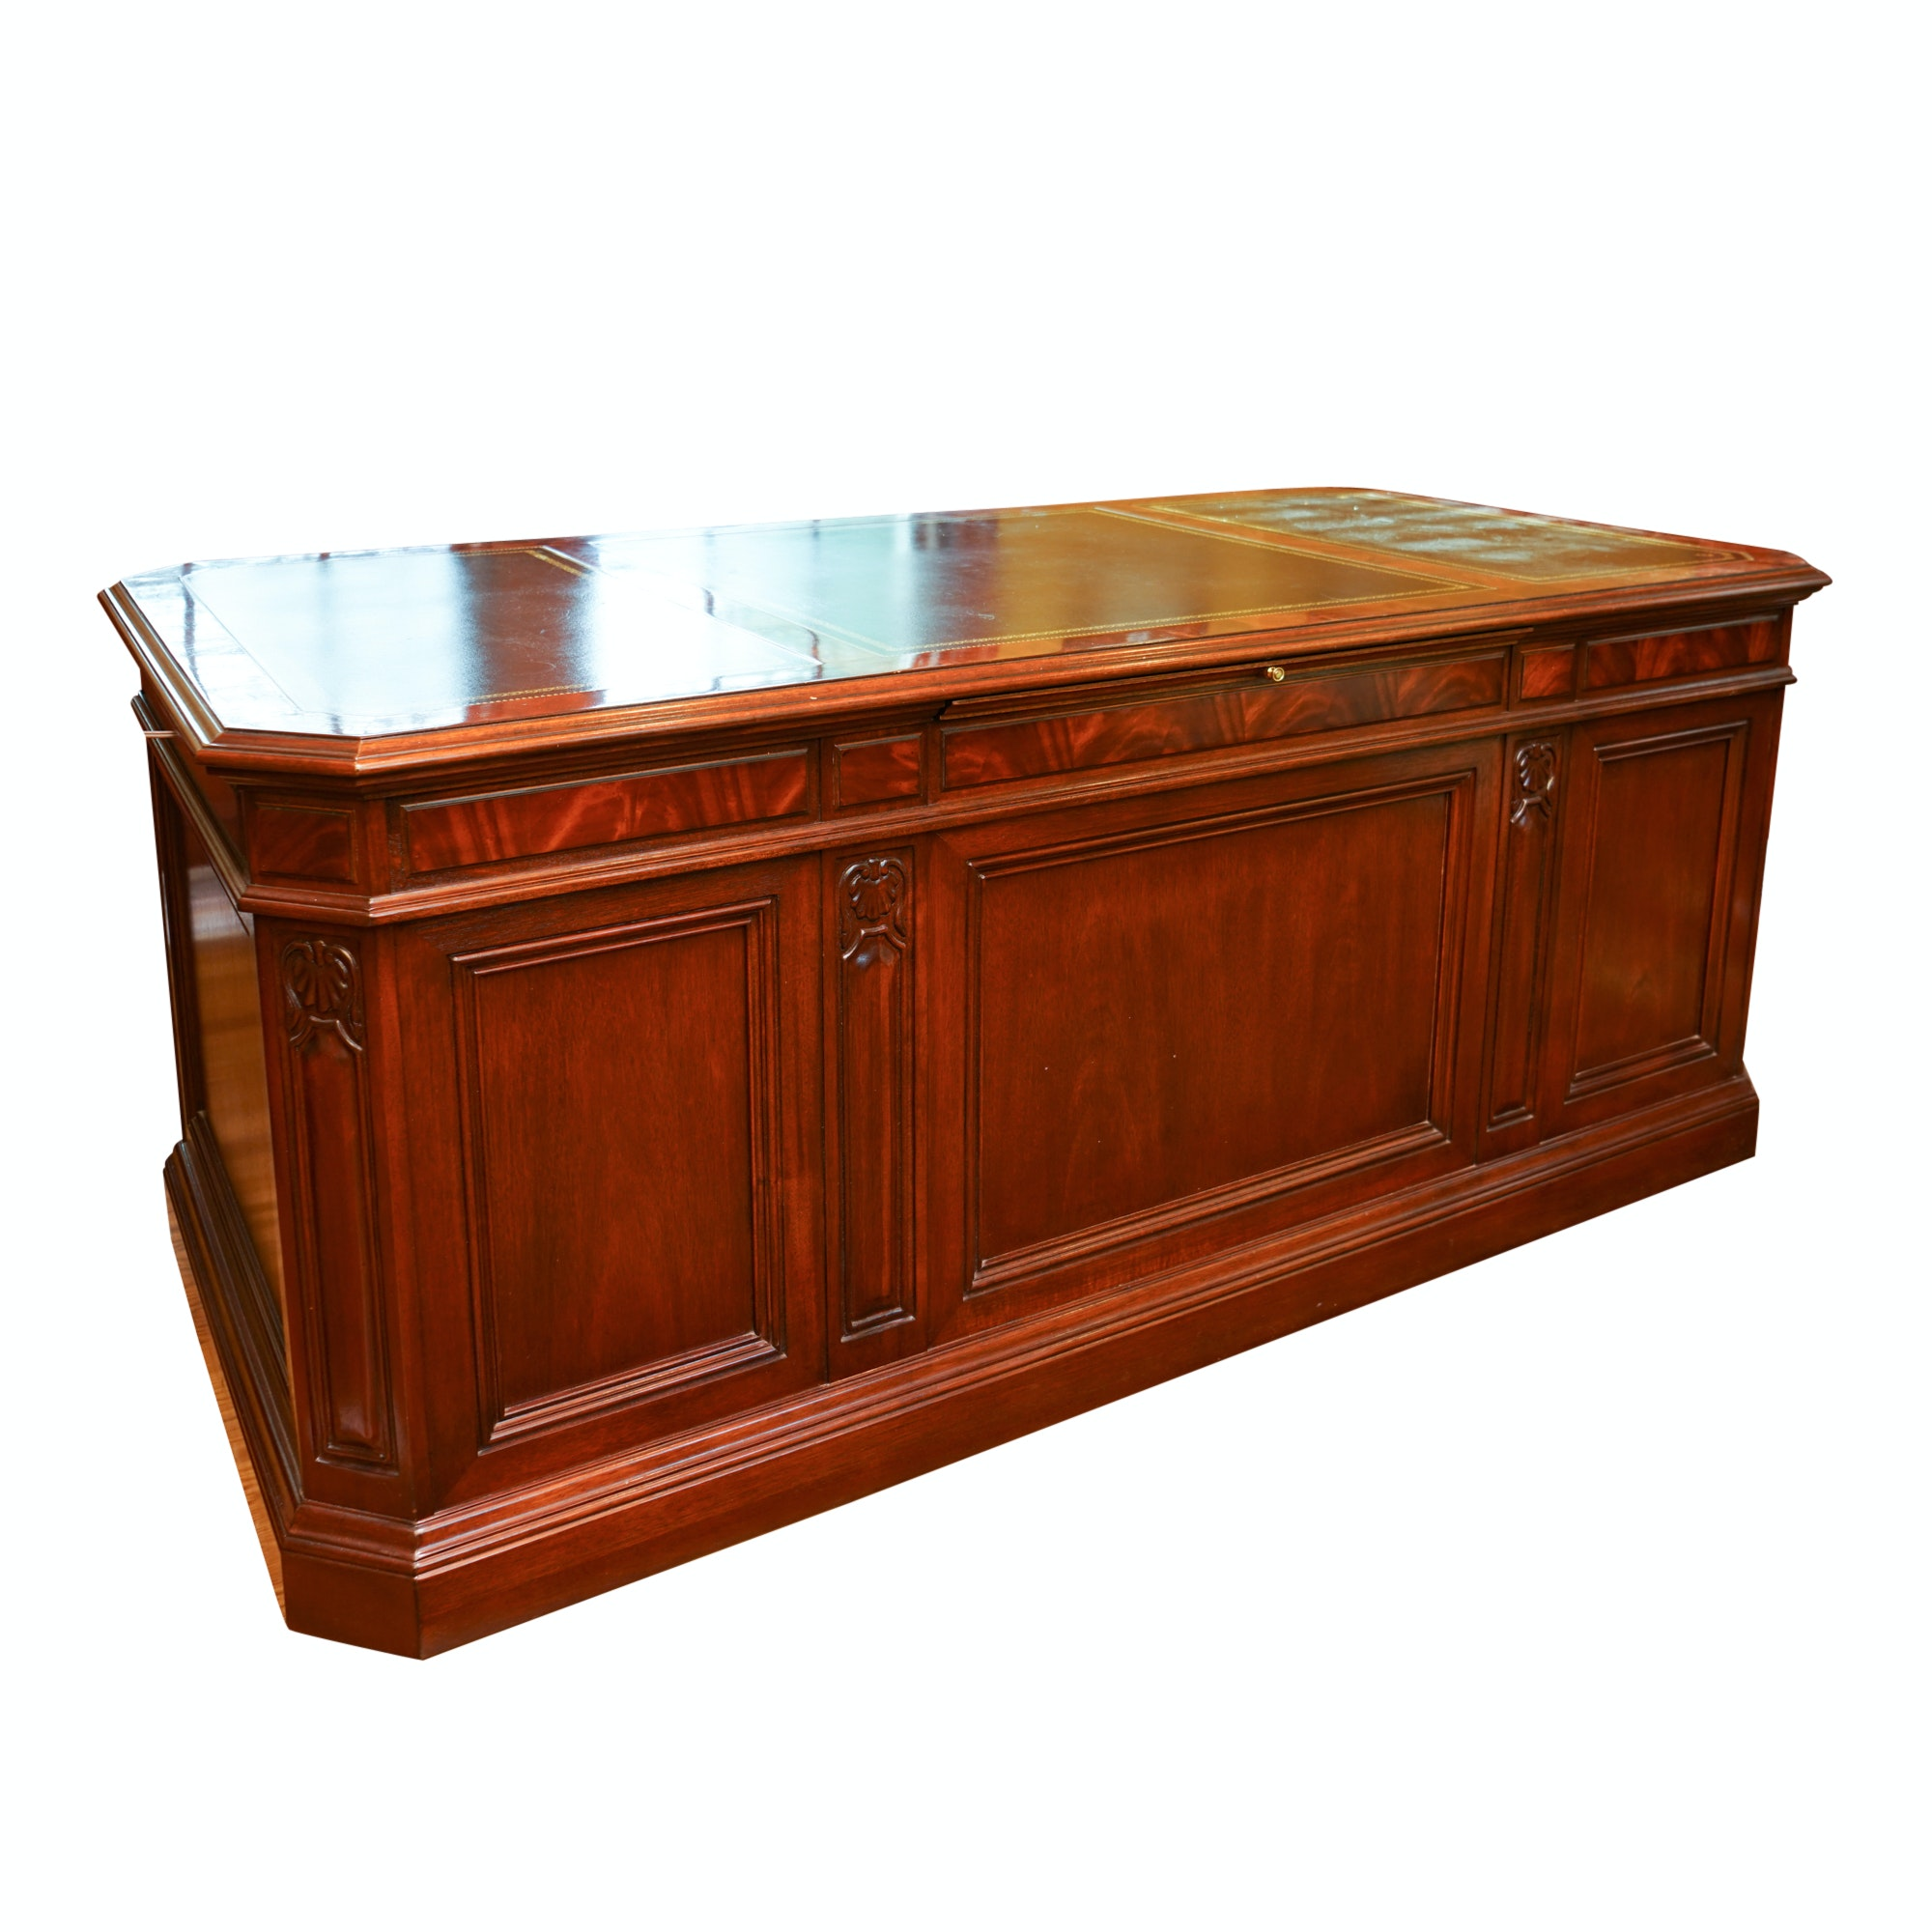 Mahogany Executive Desk by Sligh